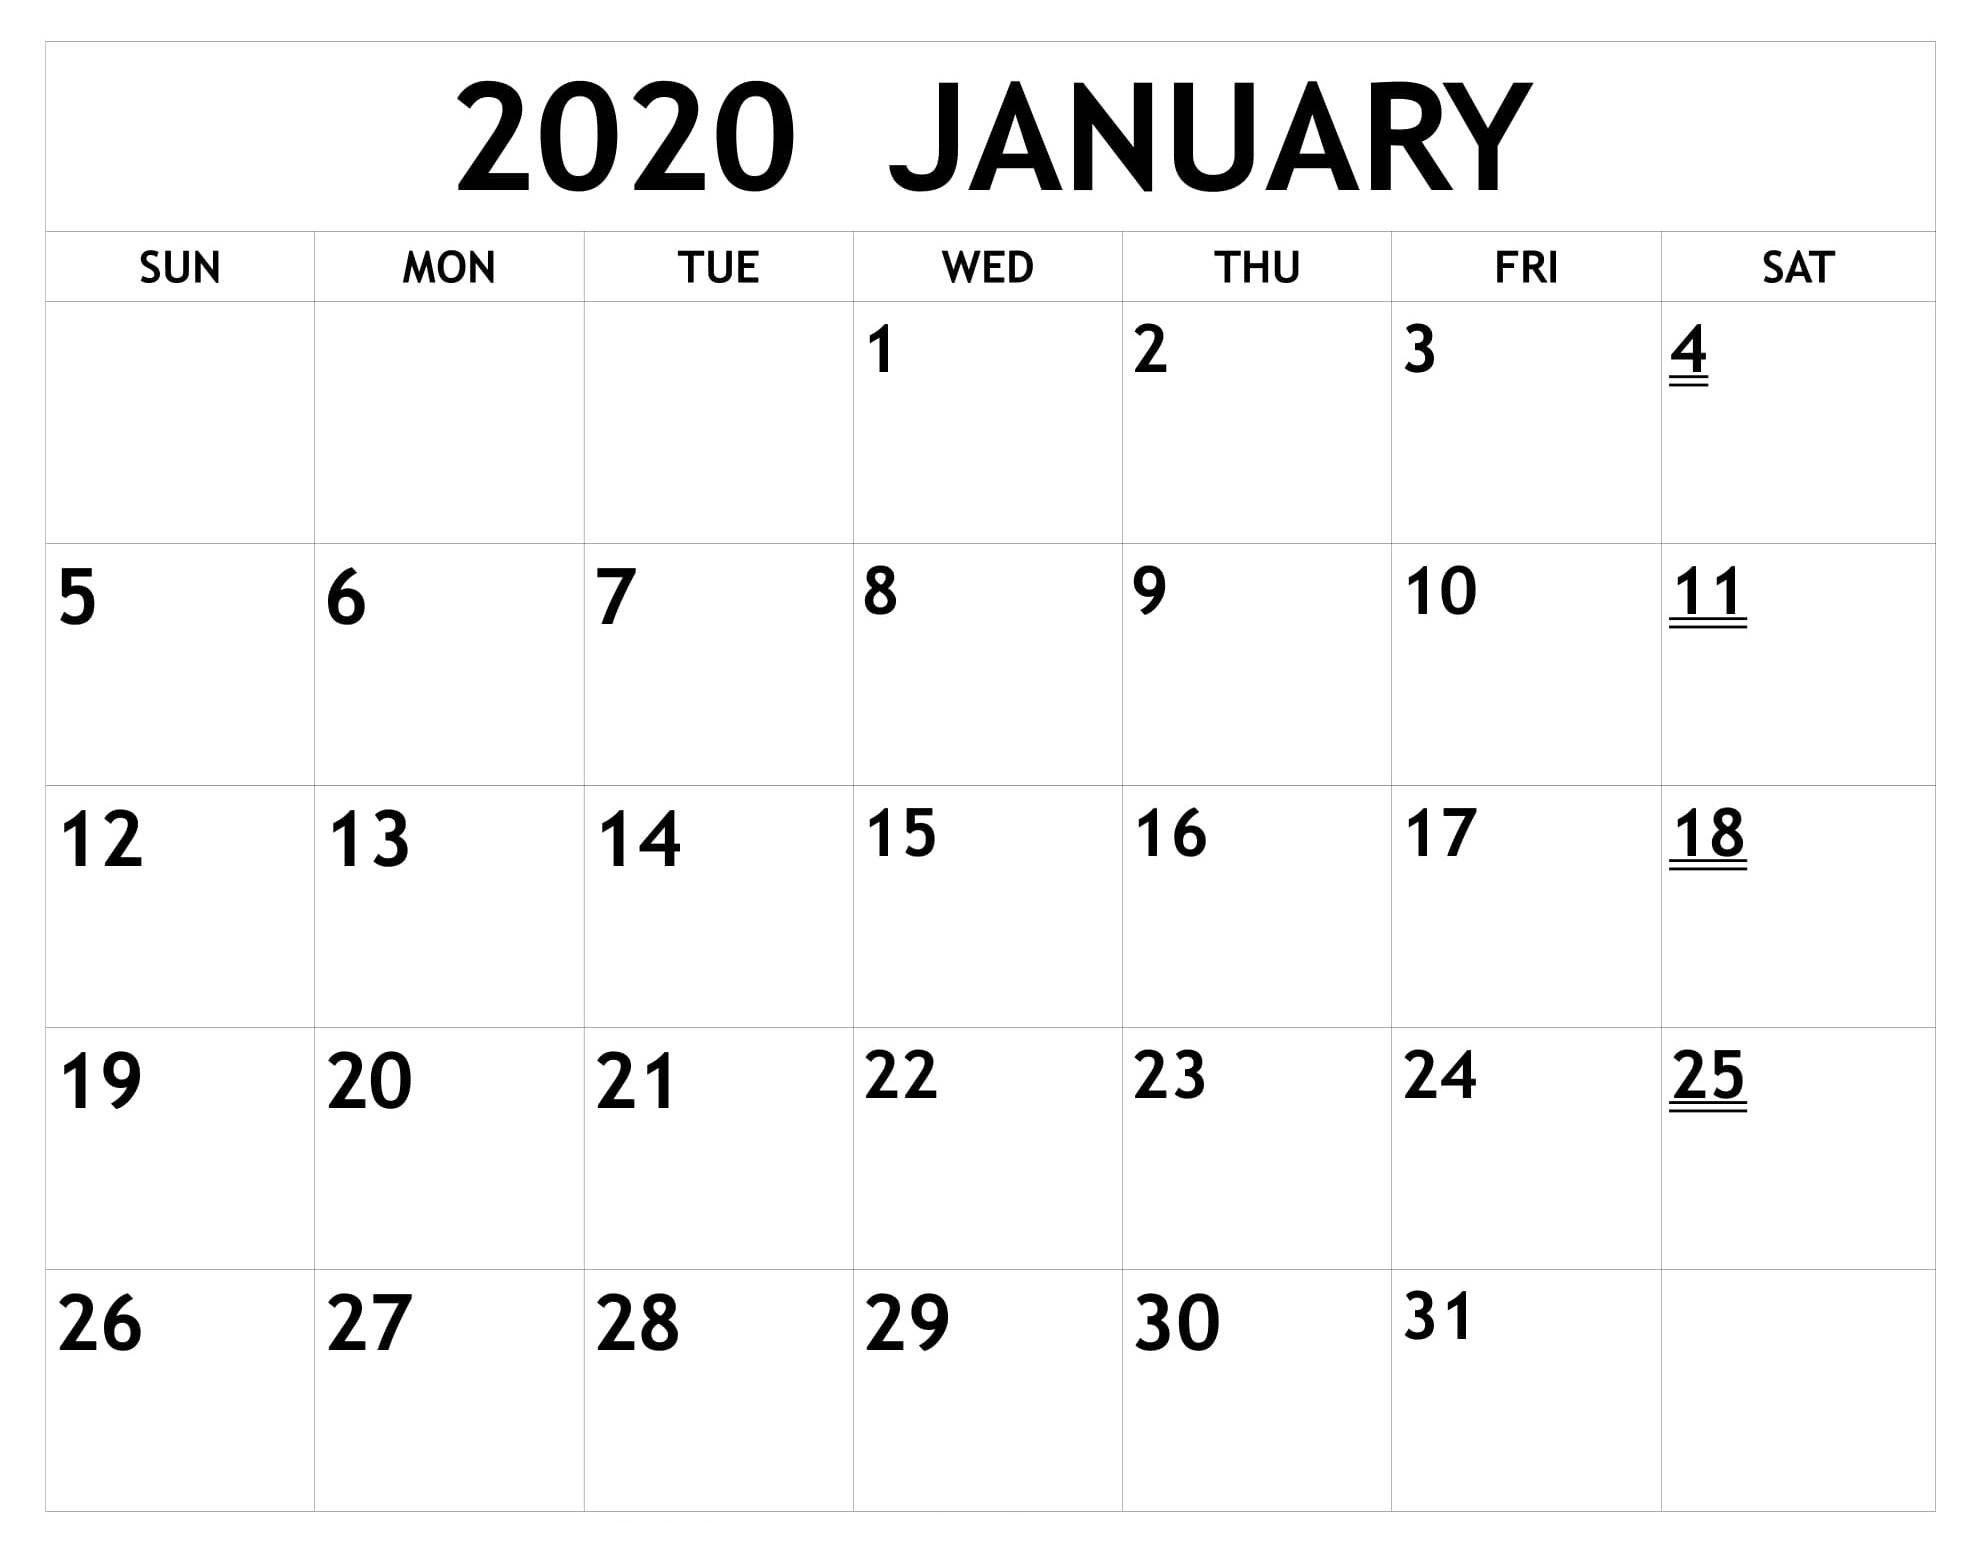 2020 Free Printable Monthly Calendars You Can Edit With Calender That Yopu Can Eedit